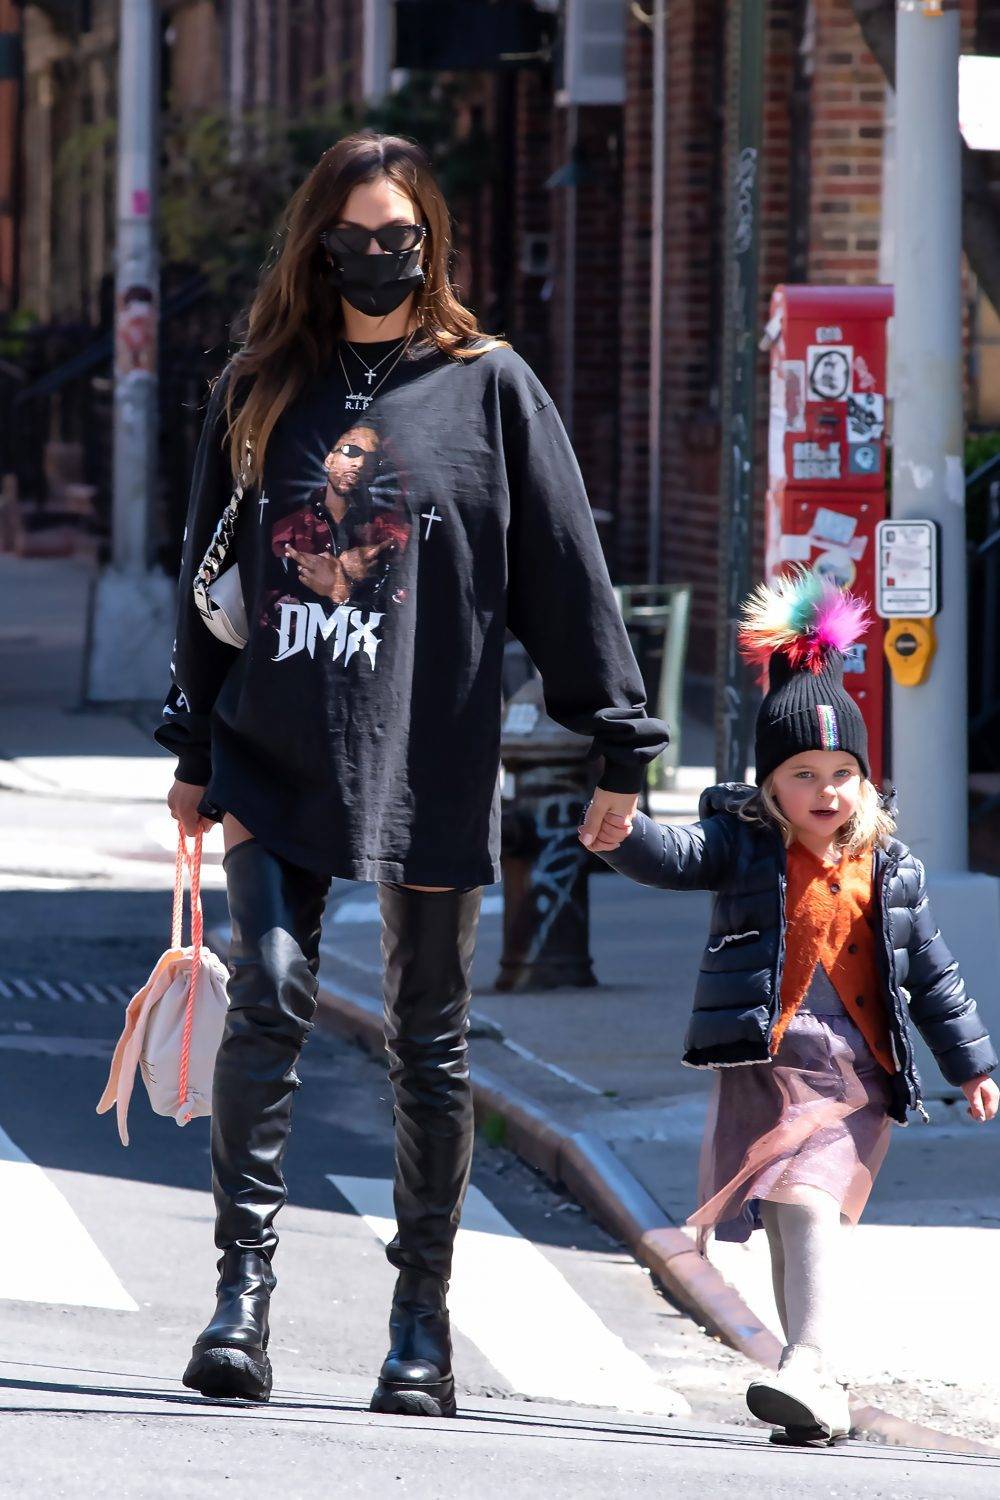 Irina Shayk Wears High Boots and a DMX T Shirt in NYC